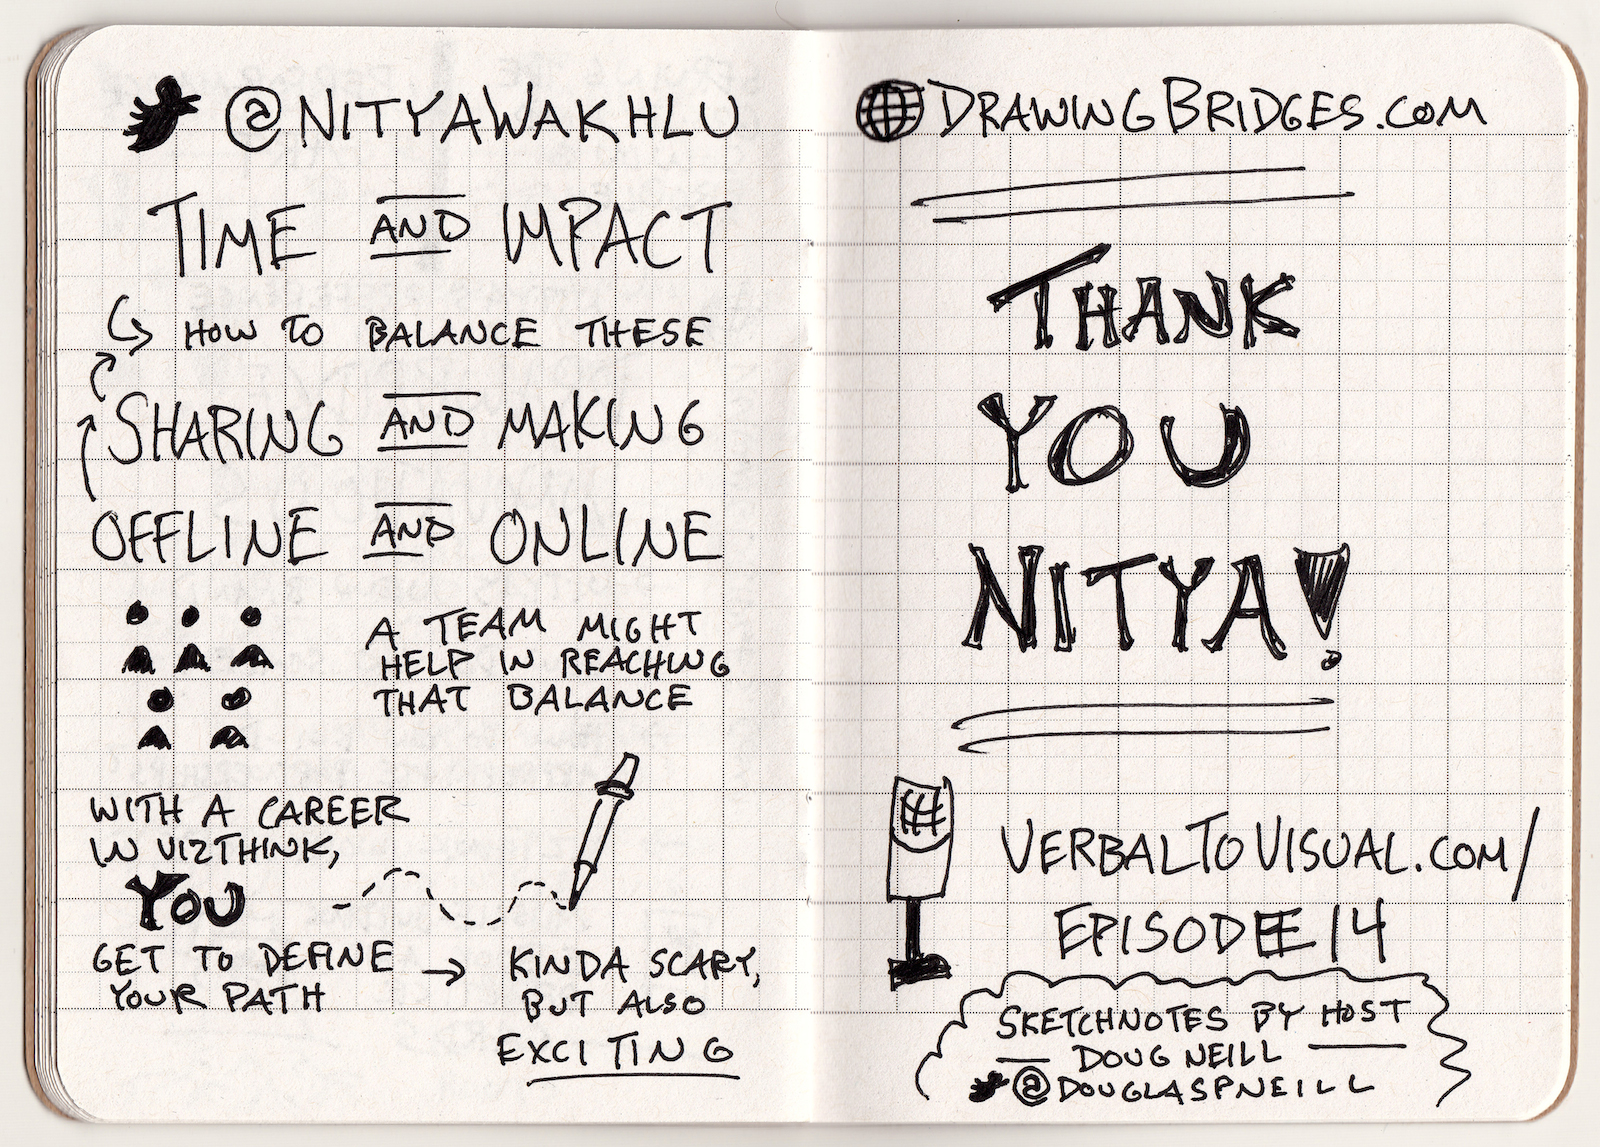 Nitya Wakhlu Serving Groups And Solving Problems (4) - The Verbal To Visual Podcast, time and impact, sharing and making, oflline and online, career in vizthink